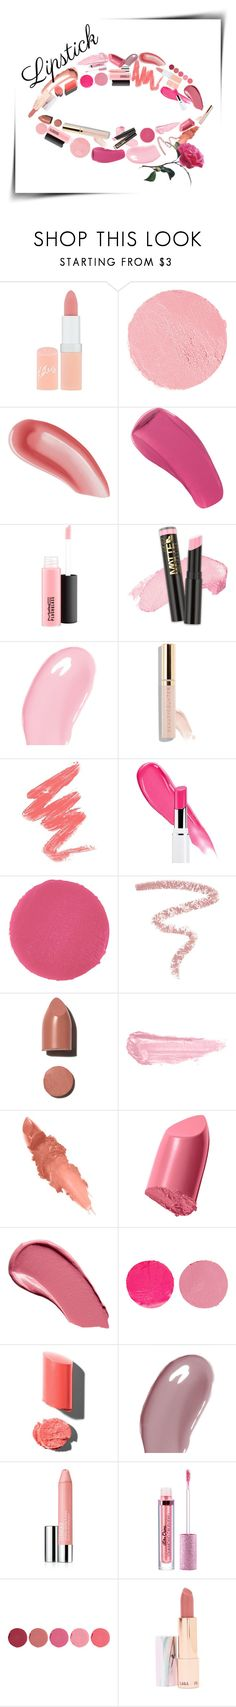 Summer lipstick: Nude & Rose 🌹 by onelittleme on Polyvore featuring beauty, Beautycounter, Christian Dior, L.A. Girl, MAC Cosmetics, Marc Jacobs, LAQA & Co., Burberry, Wander Beauty and Yves Saint Laurent